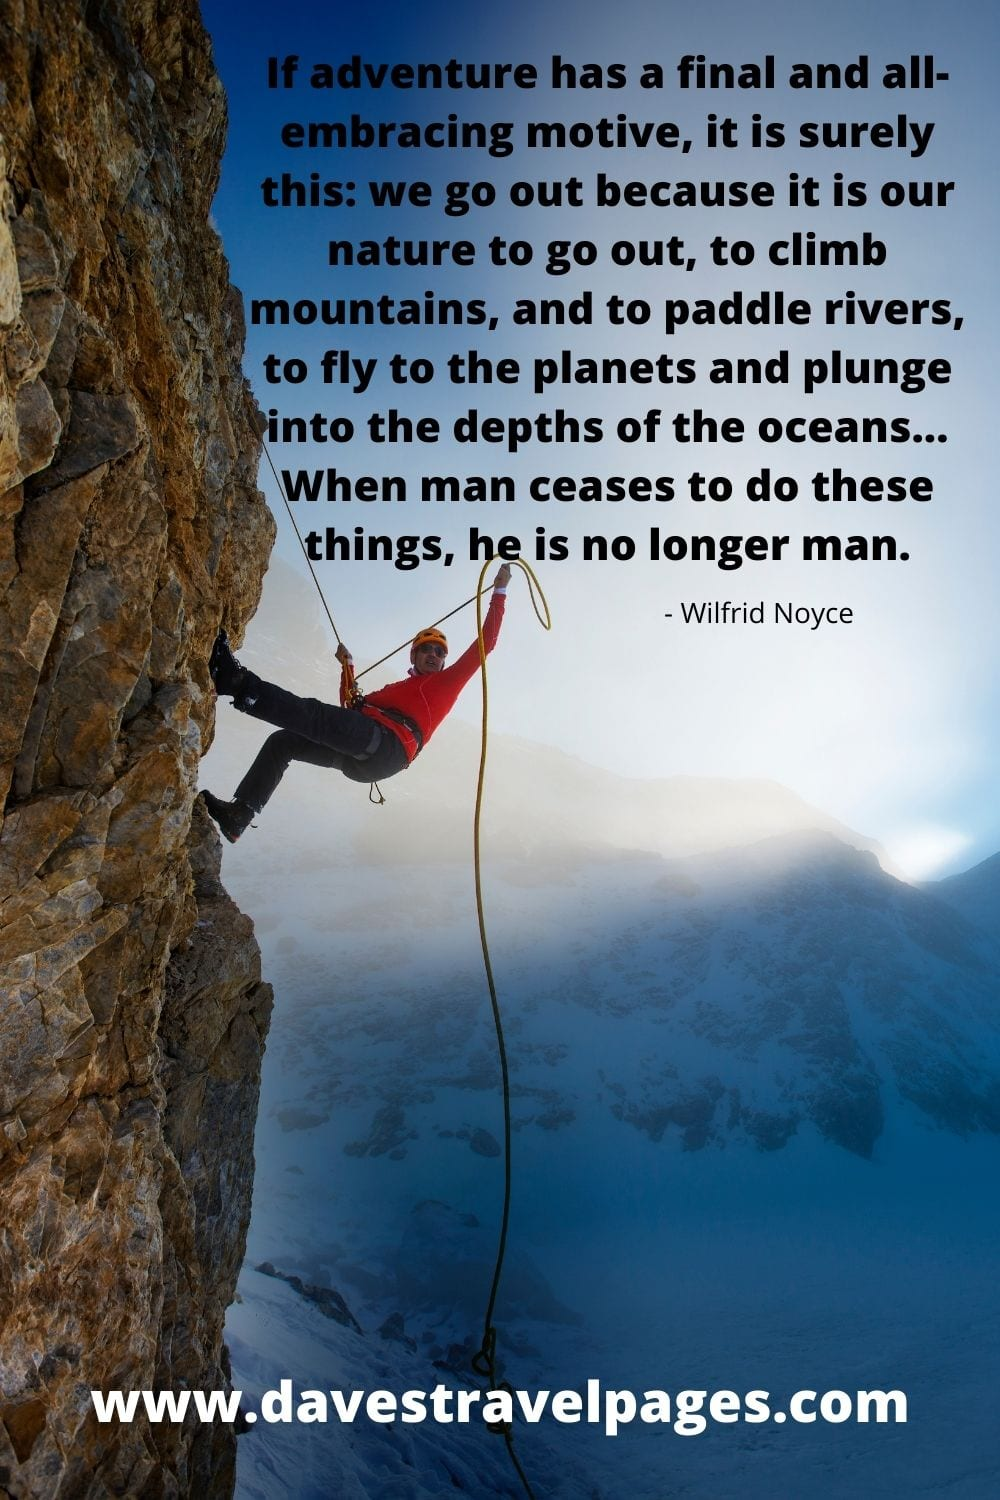 If adventure has a final and all-embracing motive, it is surely this: we go out because it is our nature to go out, to climb mountains, and to paddle rivers, to fly to the planets and plunge into the depths of the oceans... When man ceases to do these things, he is no longer man. - Wilfrid Noyce Quote